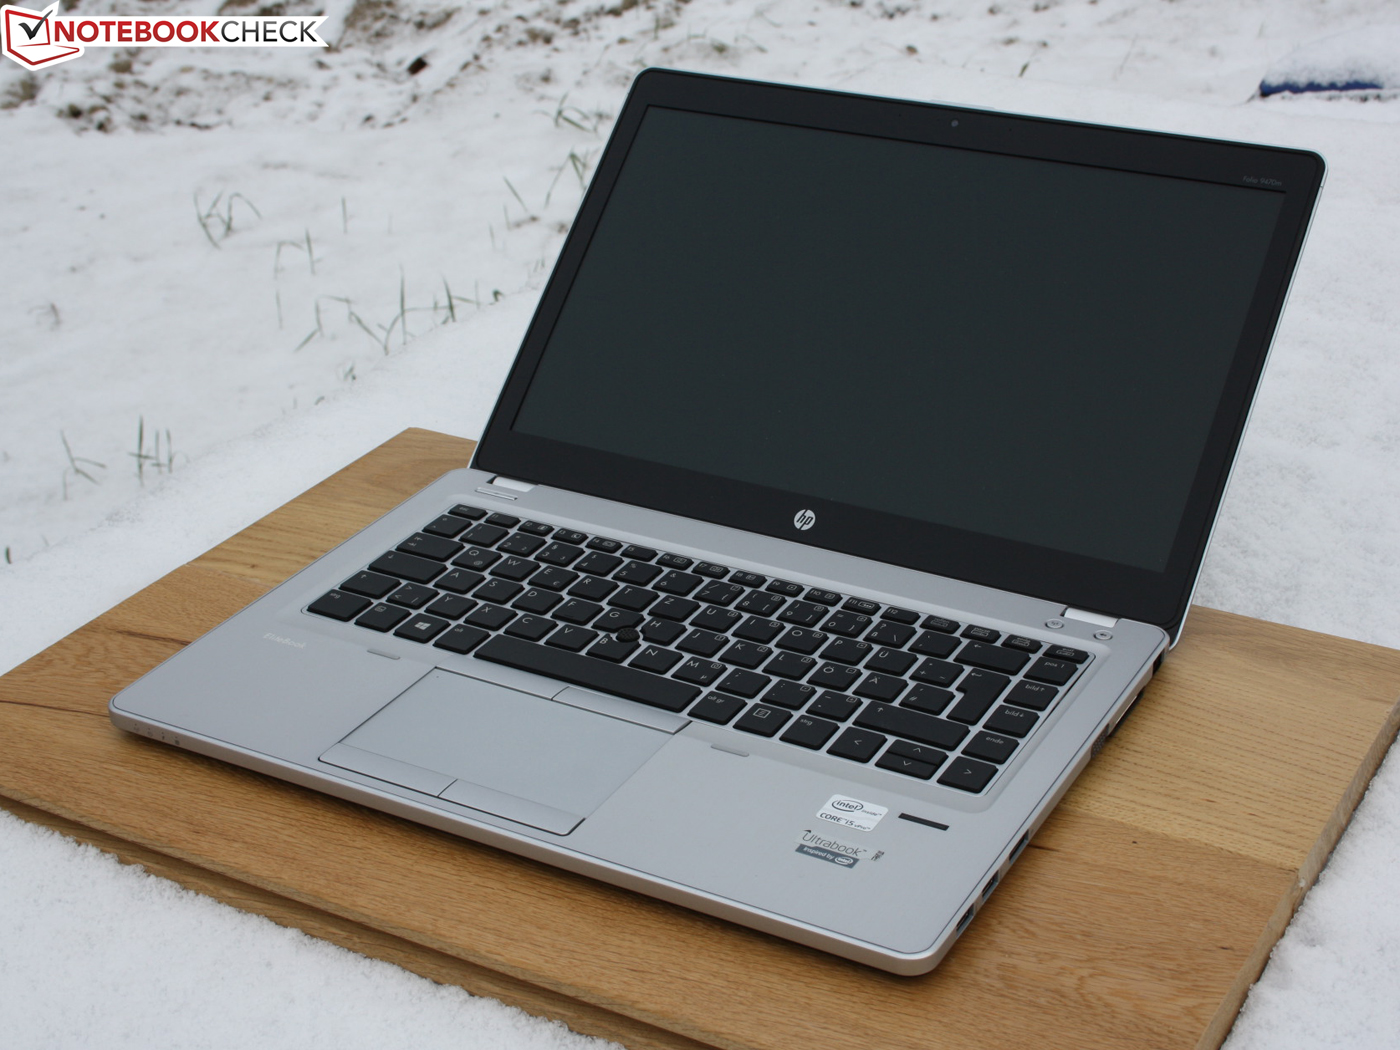 hp folio 9470m gia re